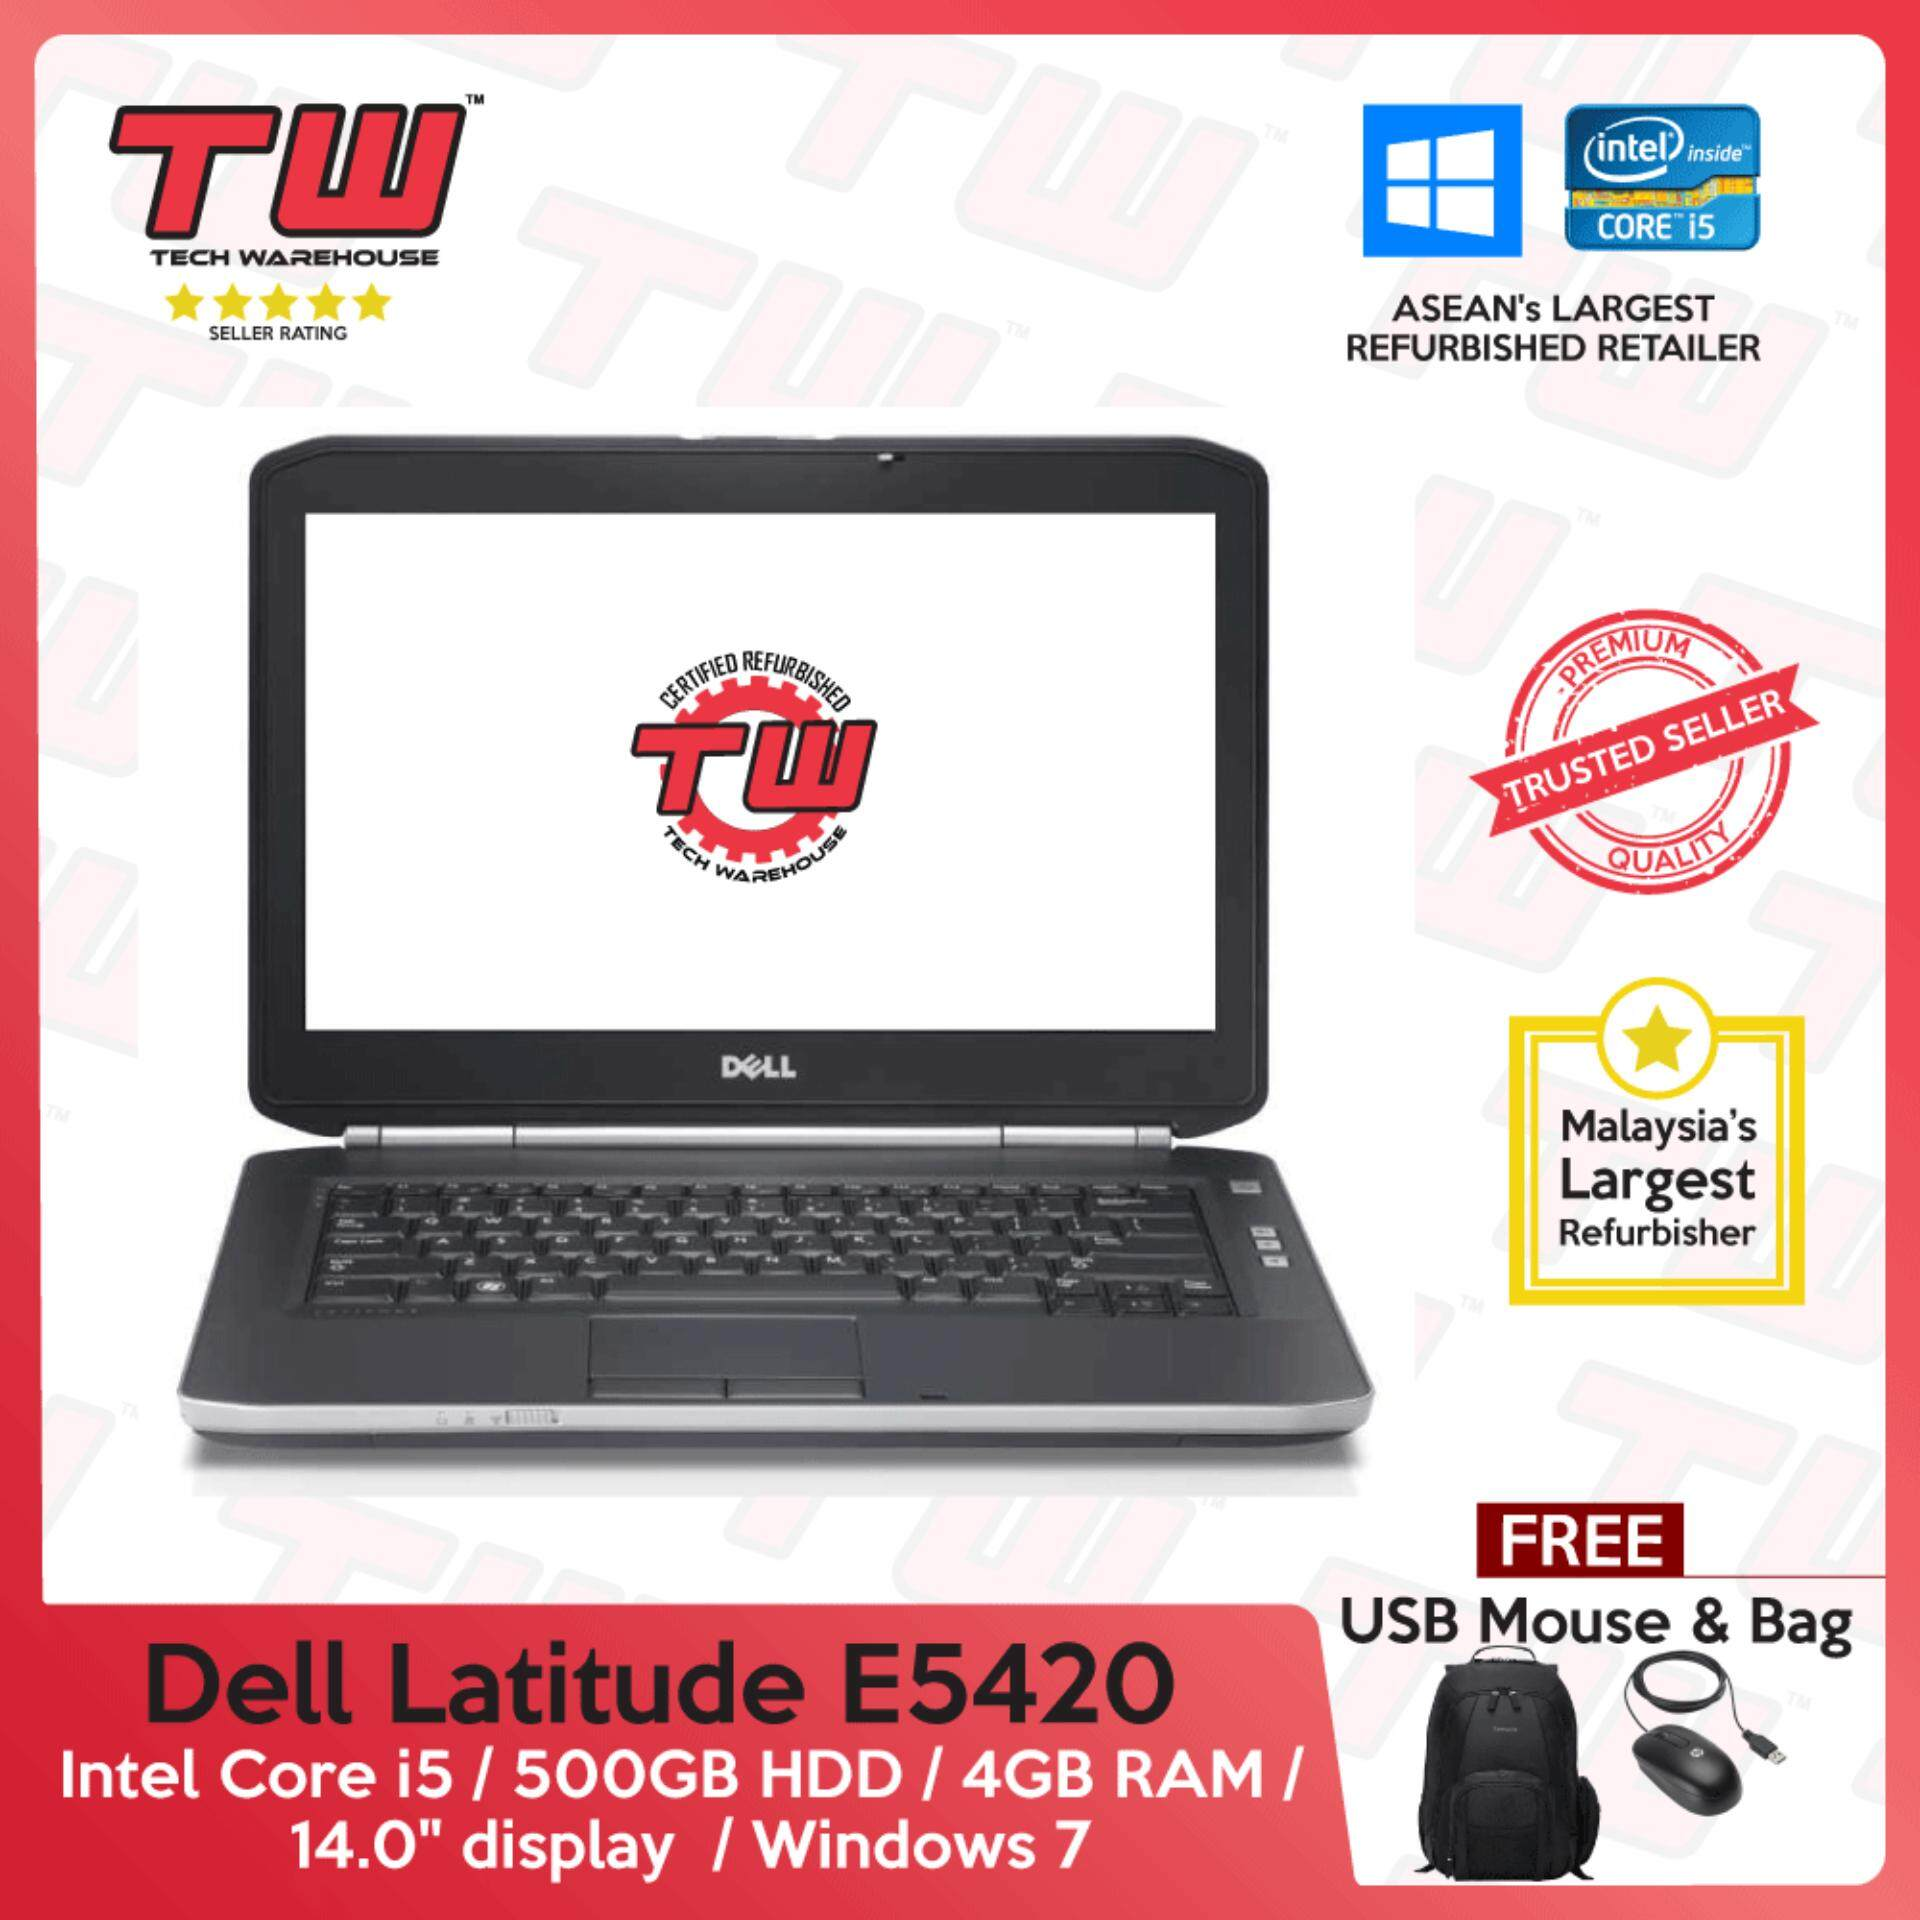 Dell Latitude E5420 Core i5 / 4GB DDR3 RAM / 500GB HDD / Windows 7 Laptop / 3 Month Warranty (Factory Refurbished) Malaysia